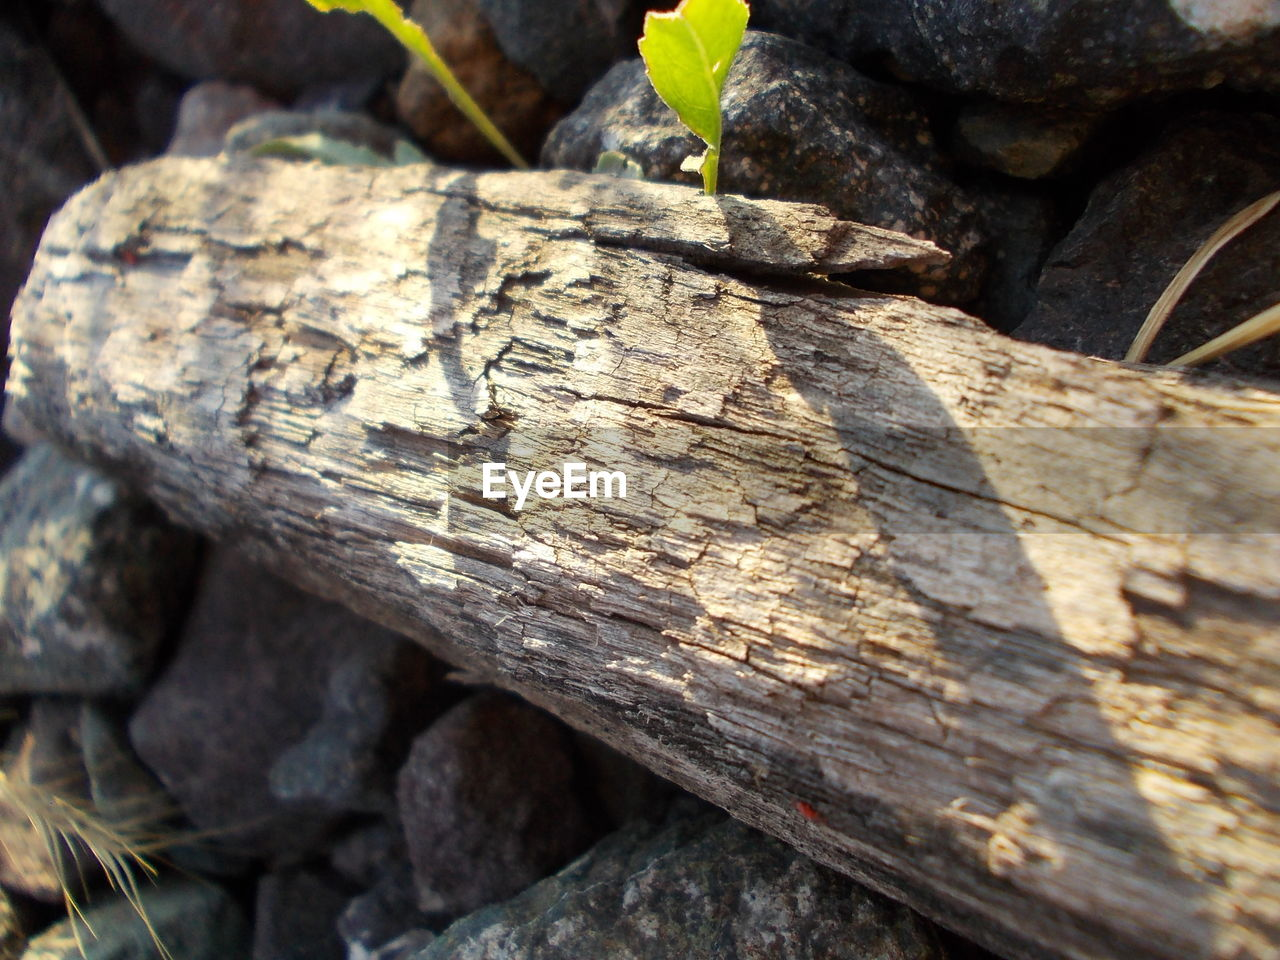 wood - material, day, outdoors, close-up, log, textured, no people, nature, tree stump